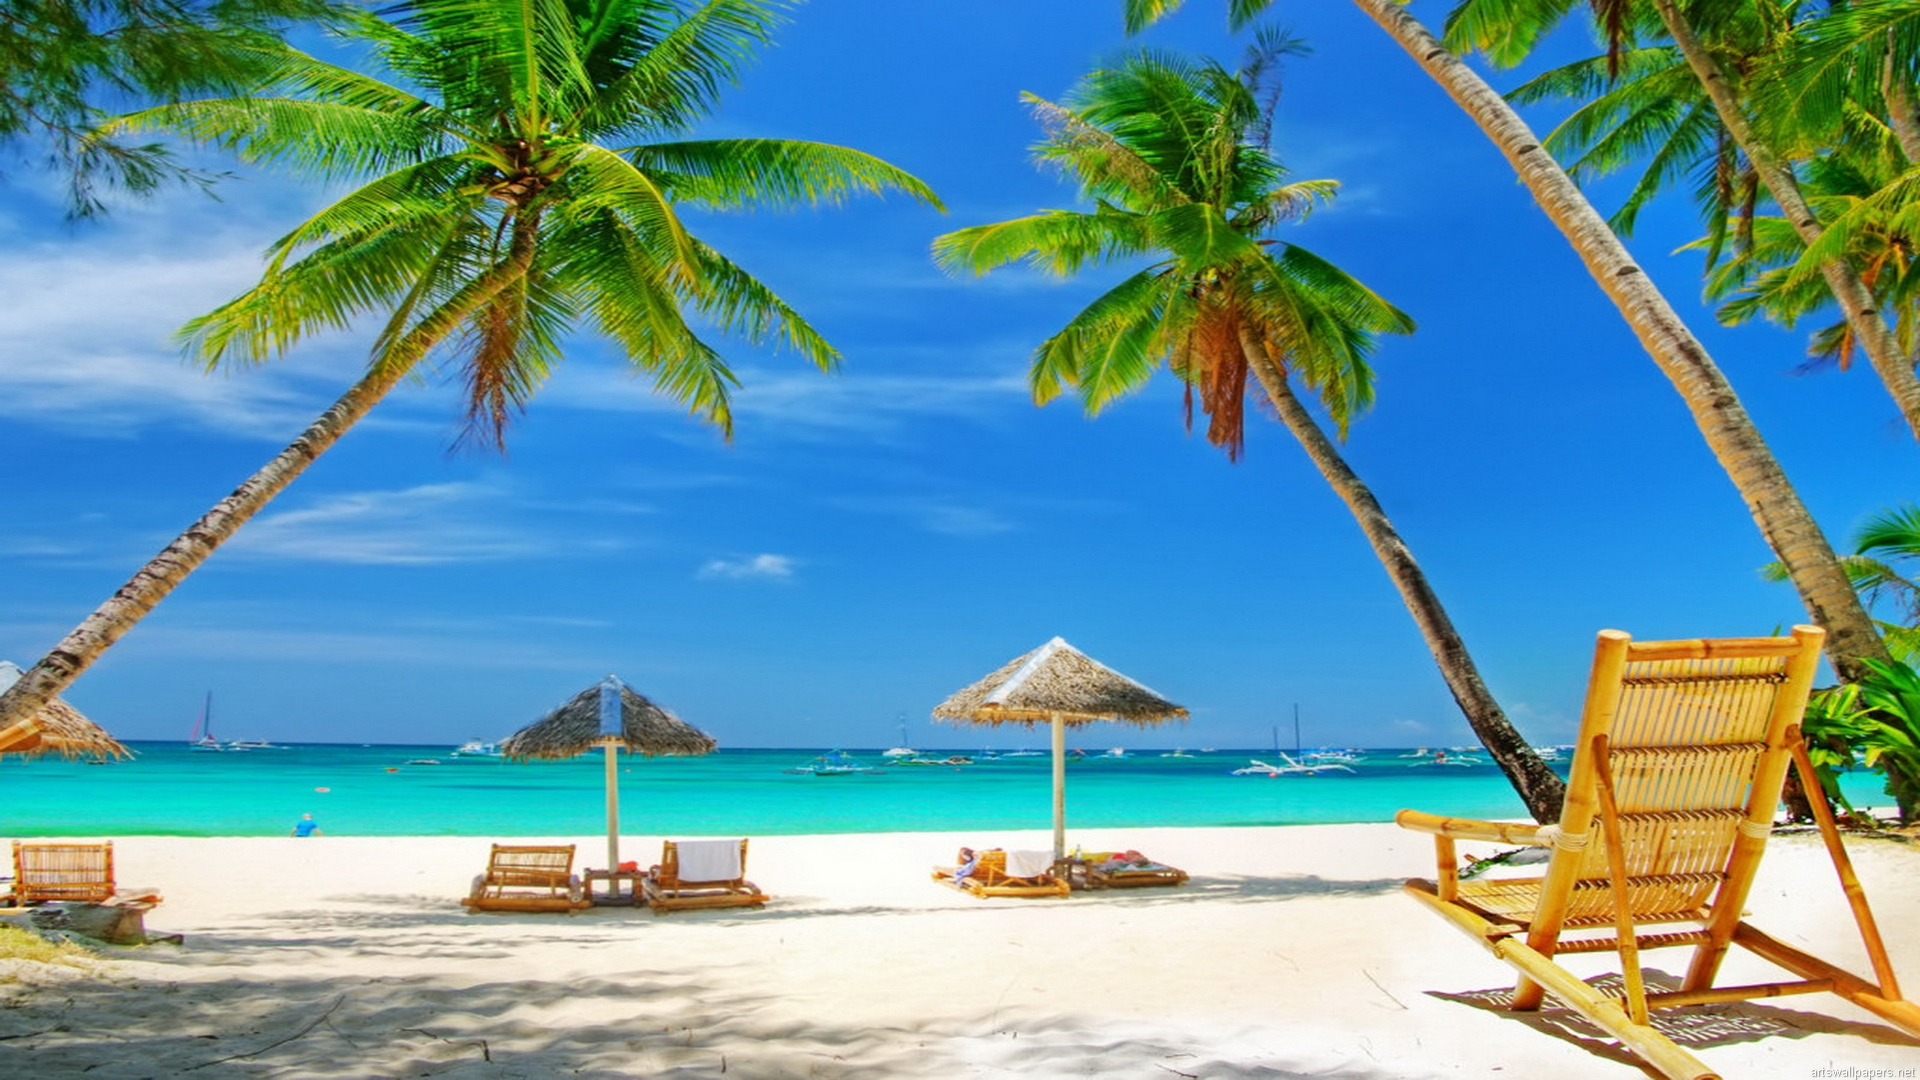 Beach Scene Wallpaper Full Desktop Backgrounds 1920x1080